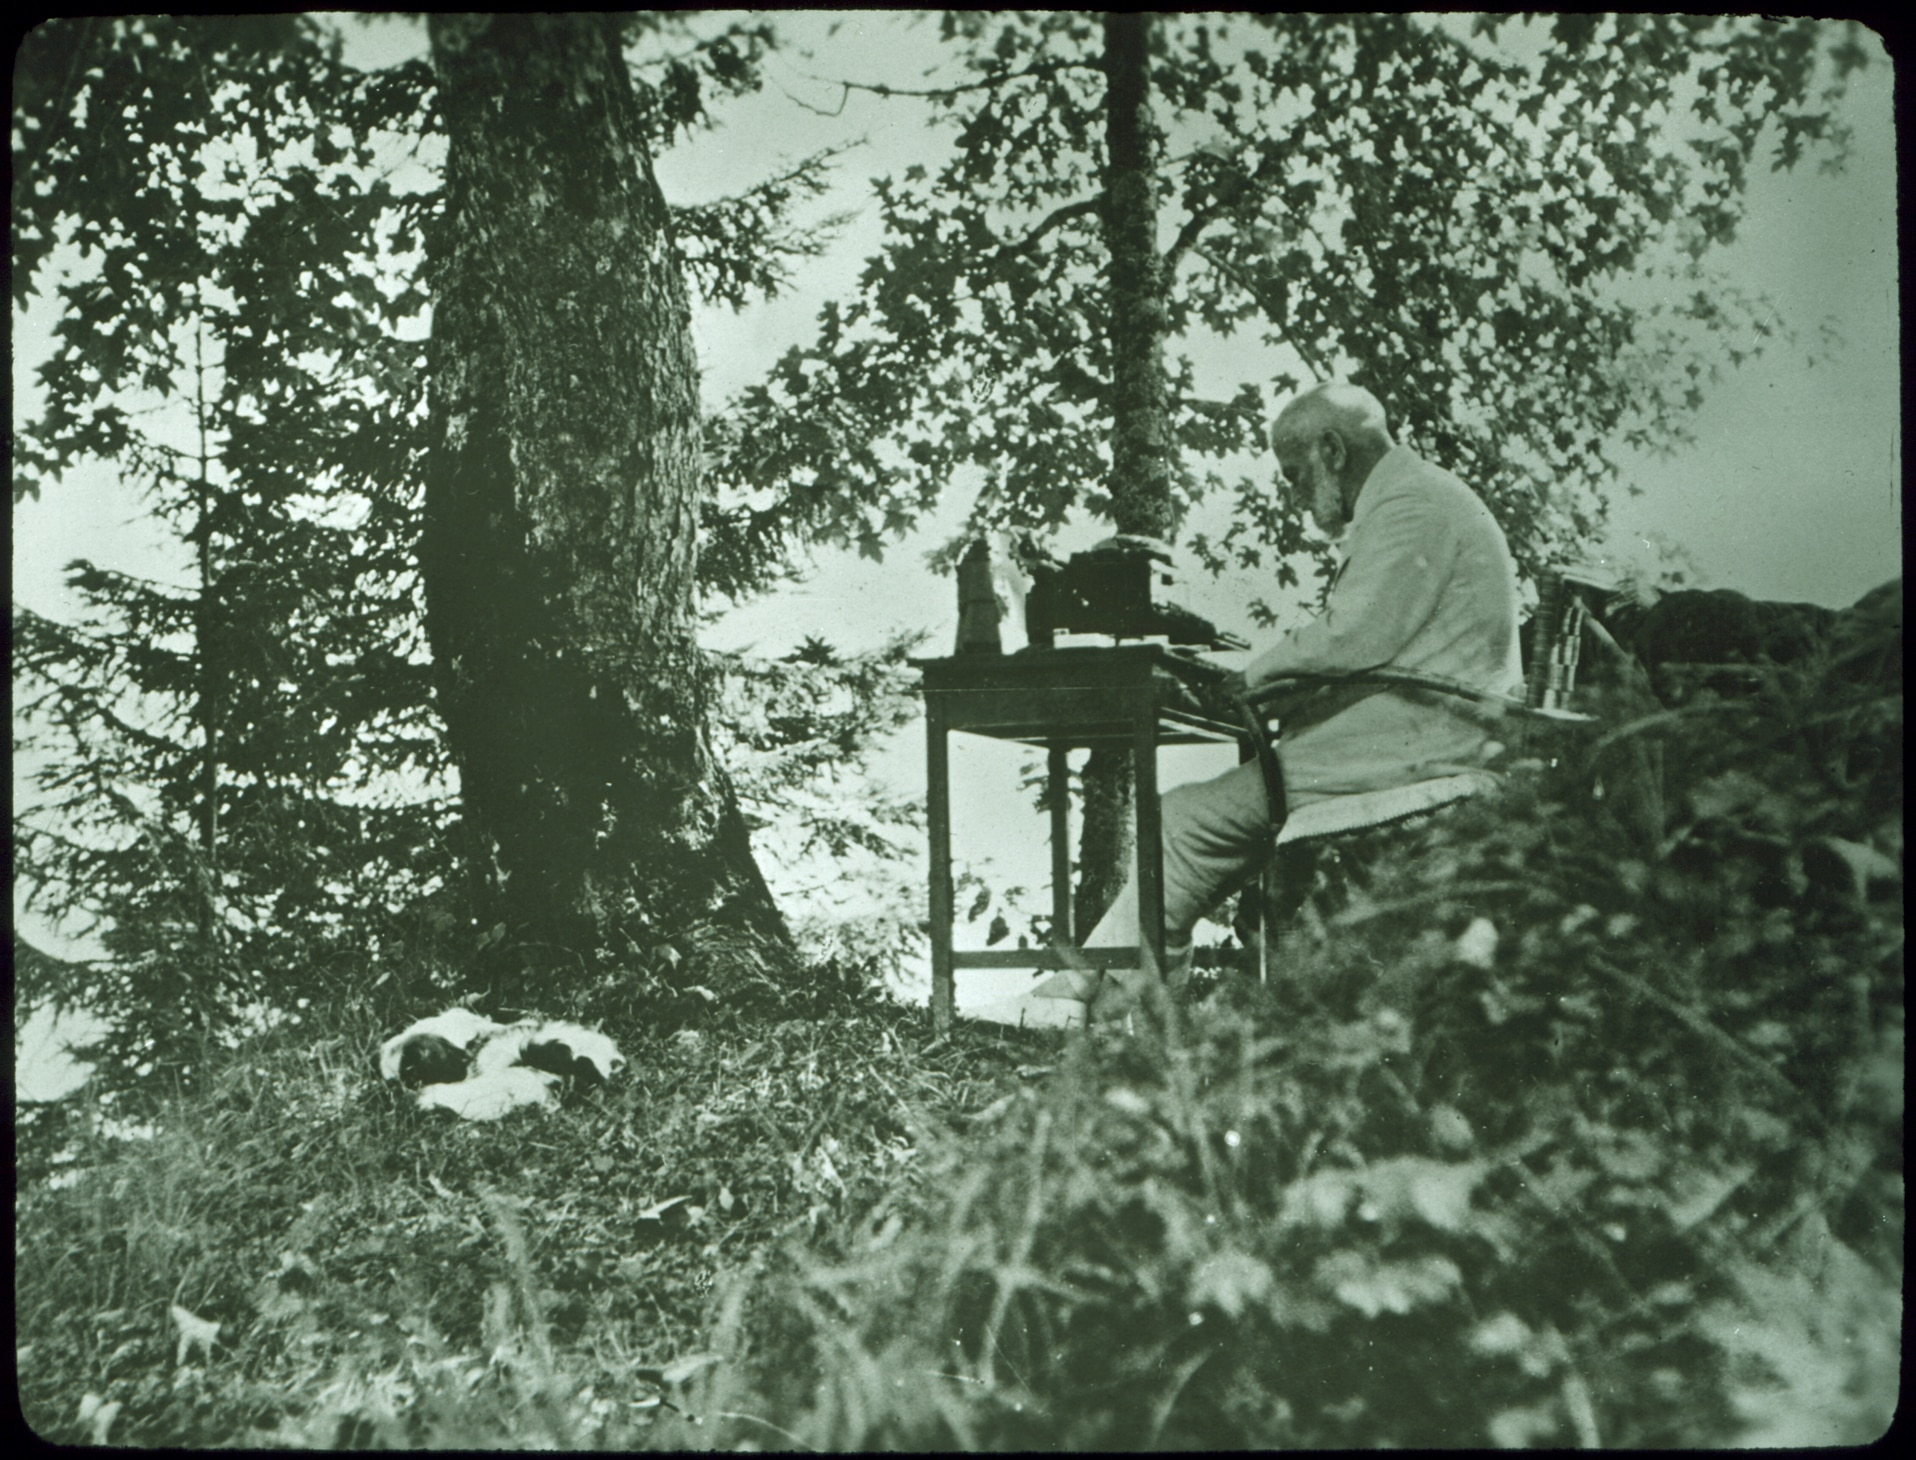 Max Bircher-Benner at his holiday home in Braunwald, 1920s. (Bircher-Benner Archive, Zurich University)